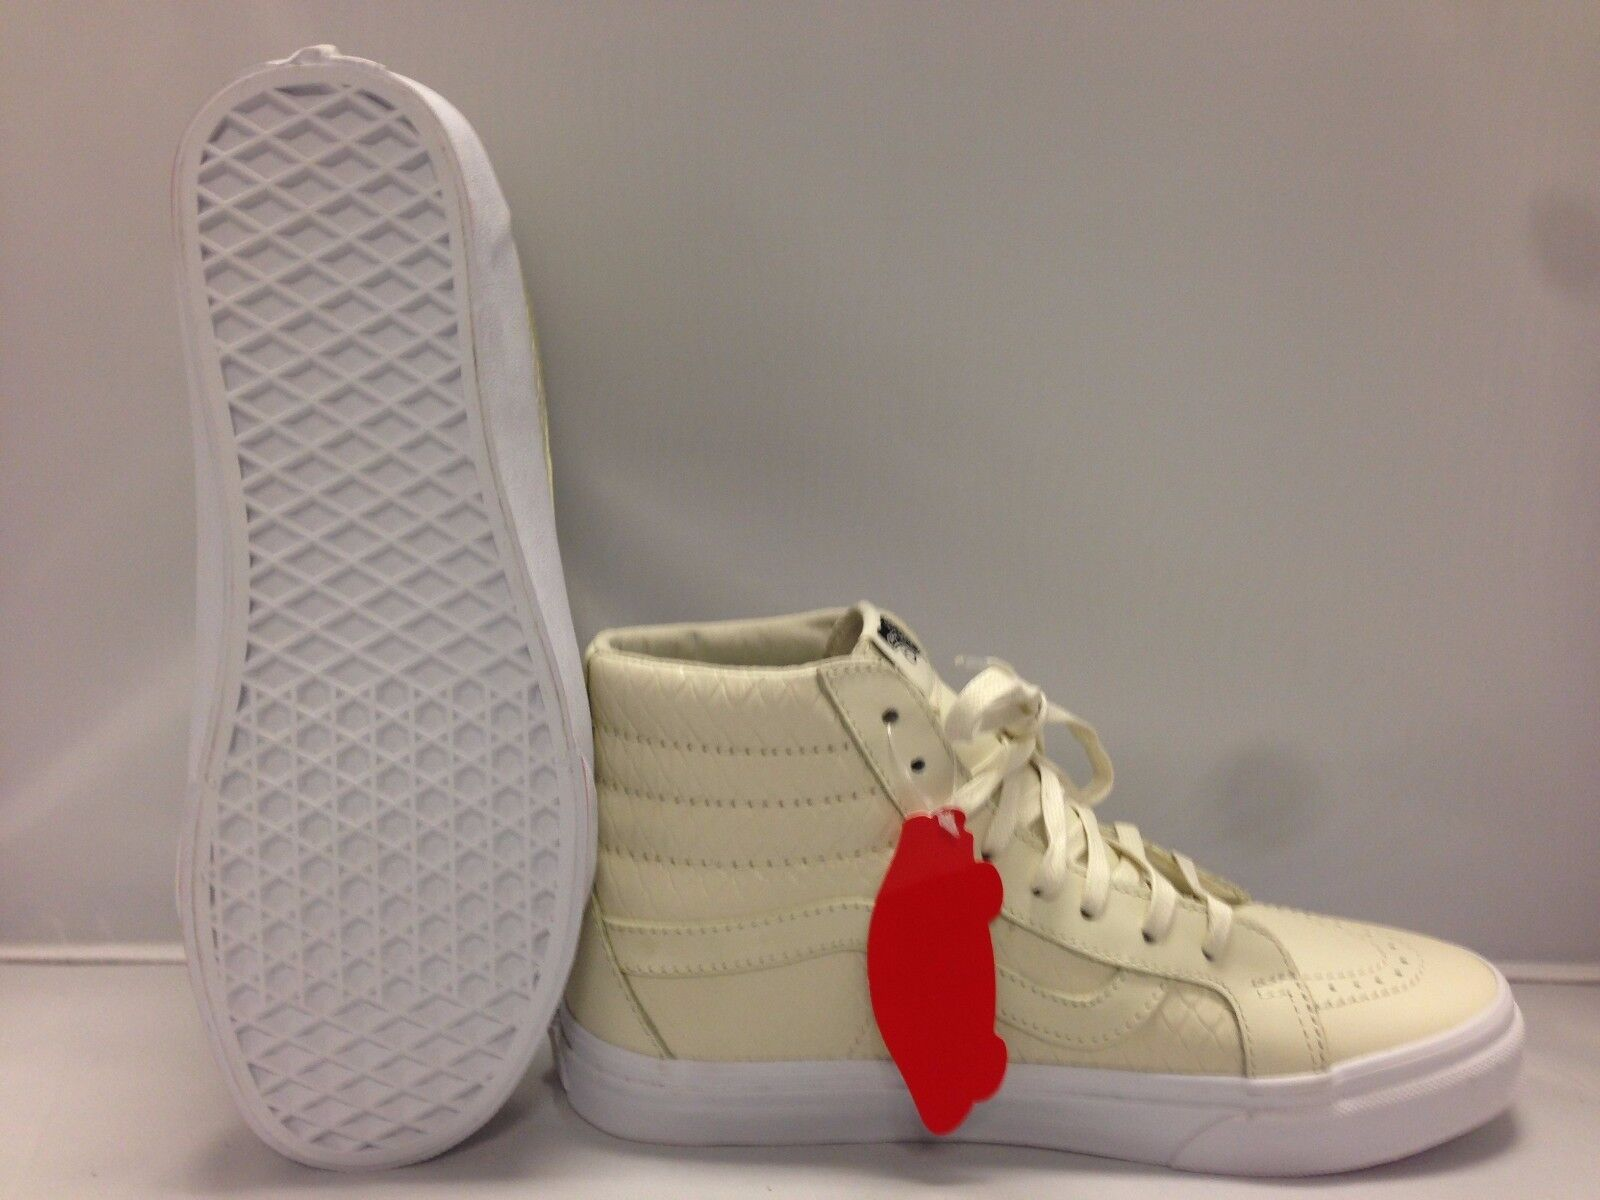 Vans hommes Chaussures Chaussures hommes